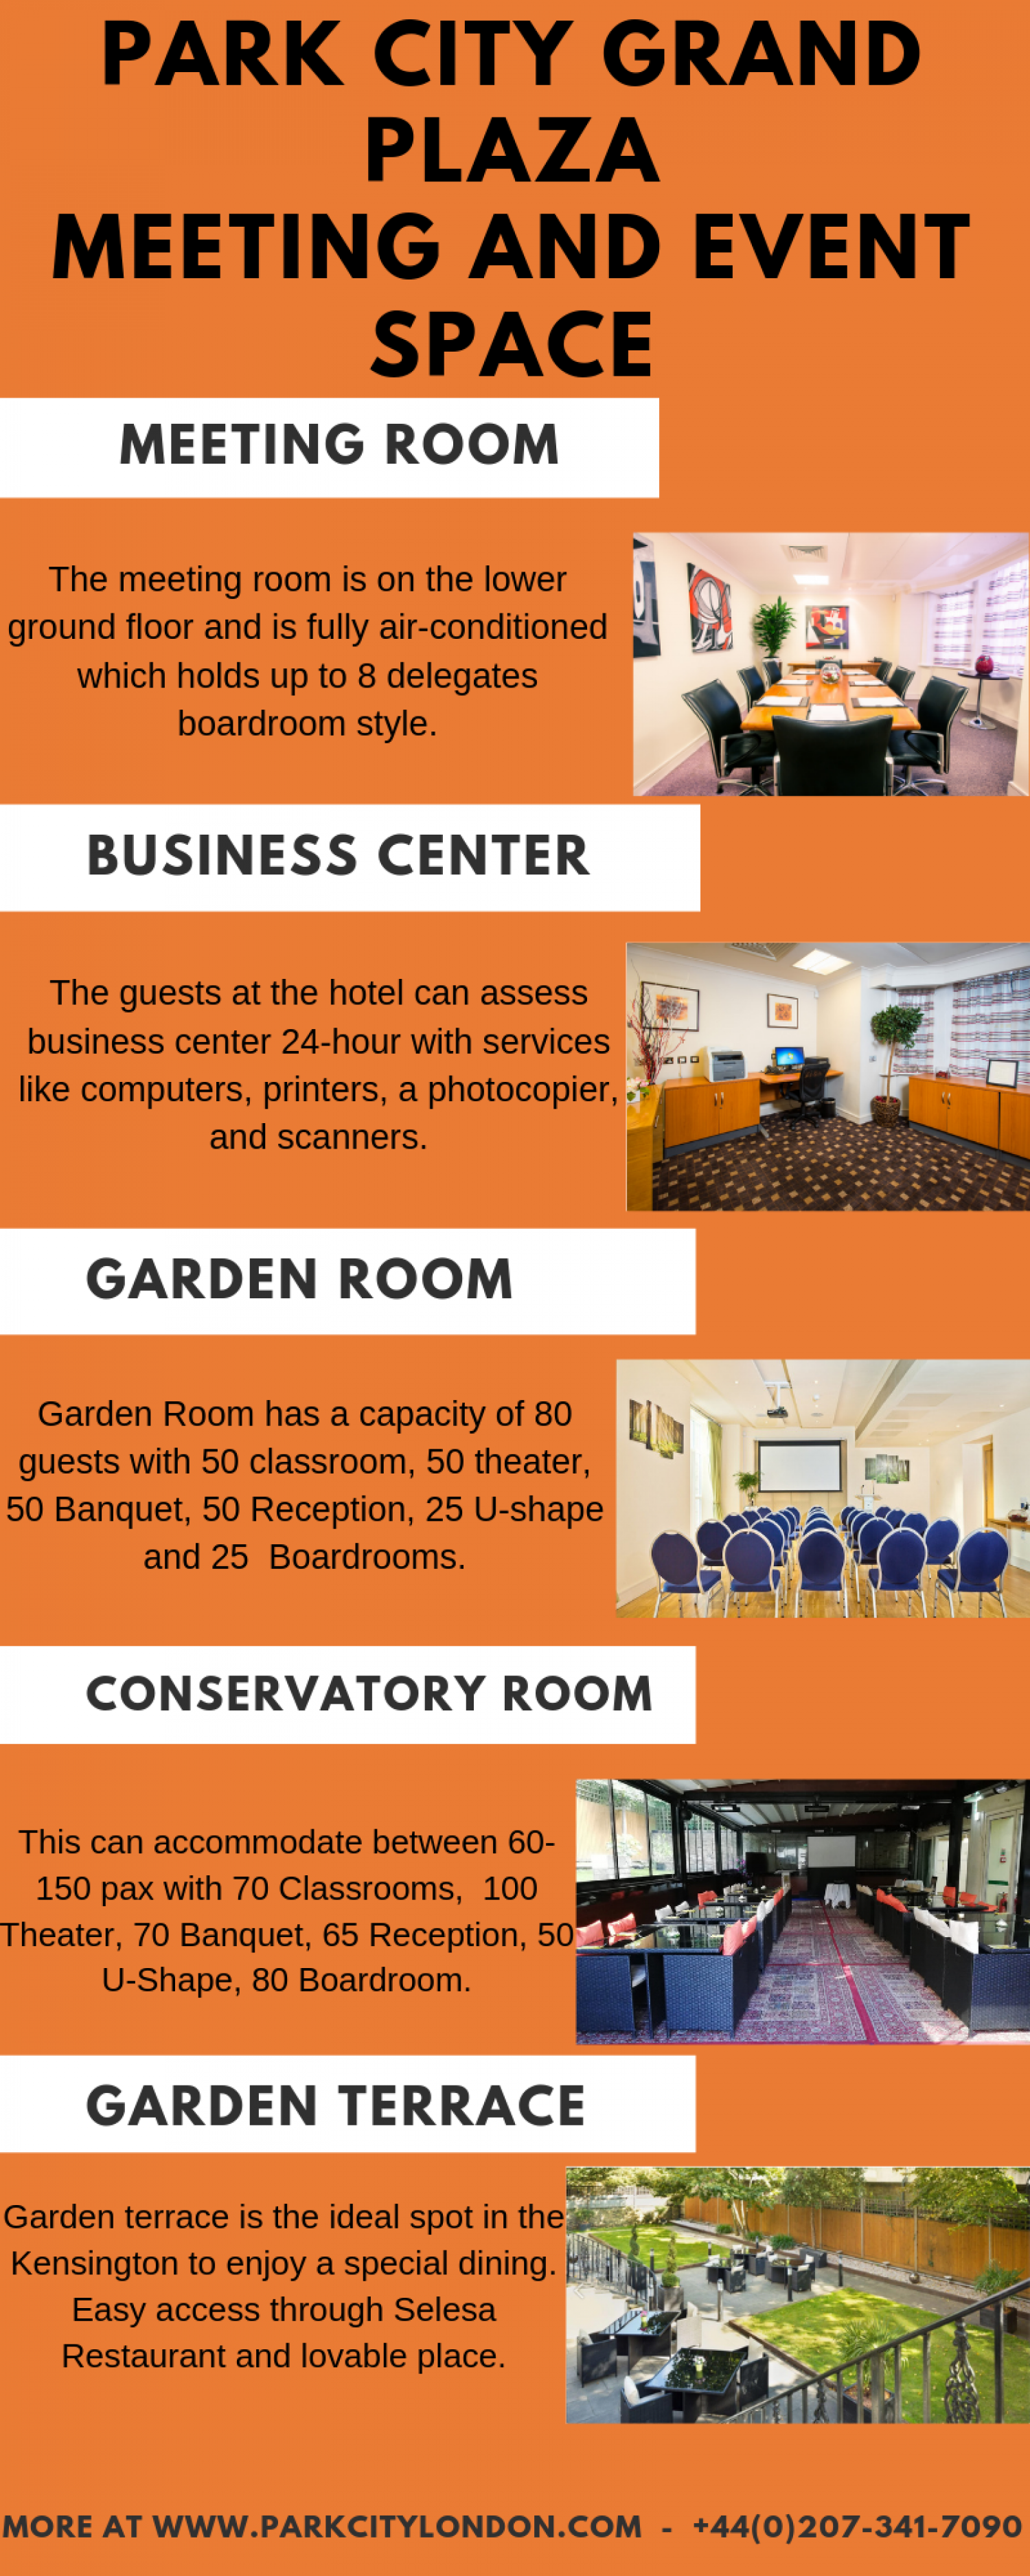 PARK CITY GRAND PLAZA - MEETING AND EVENT SPACE Infographic